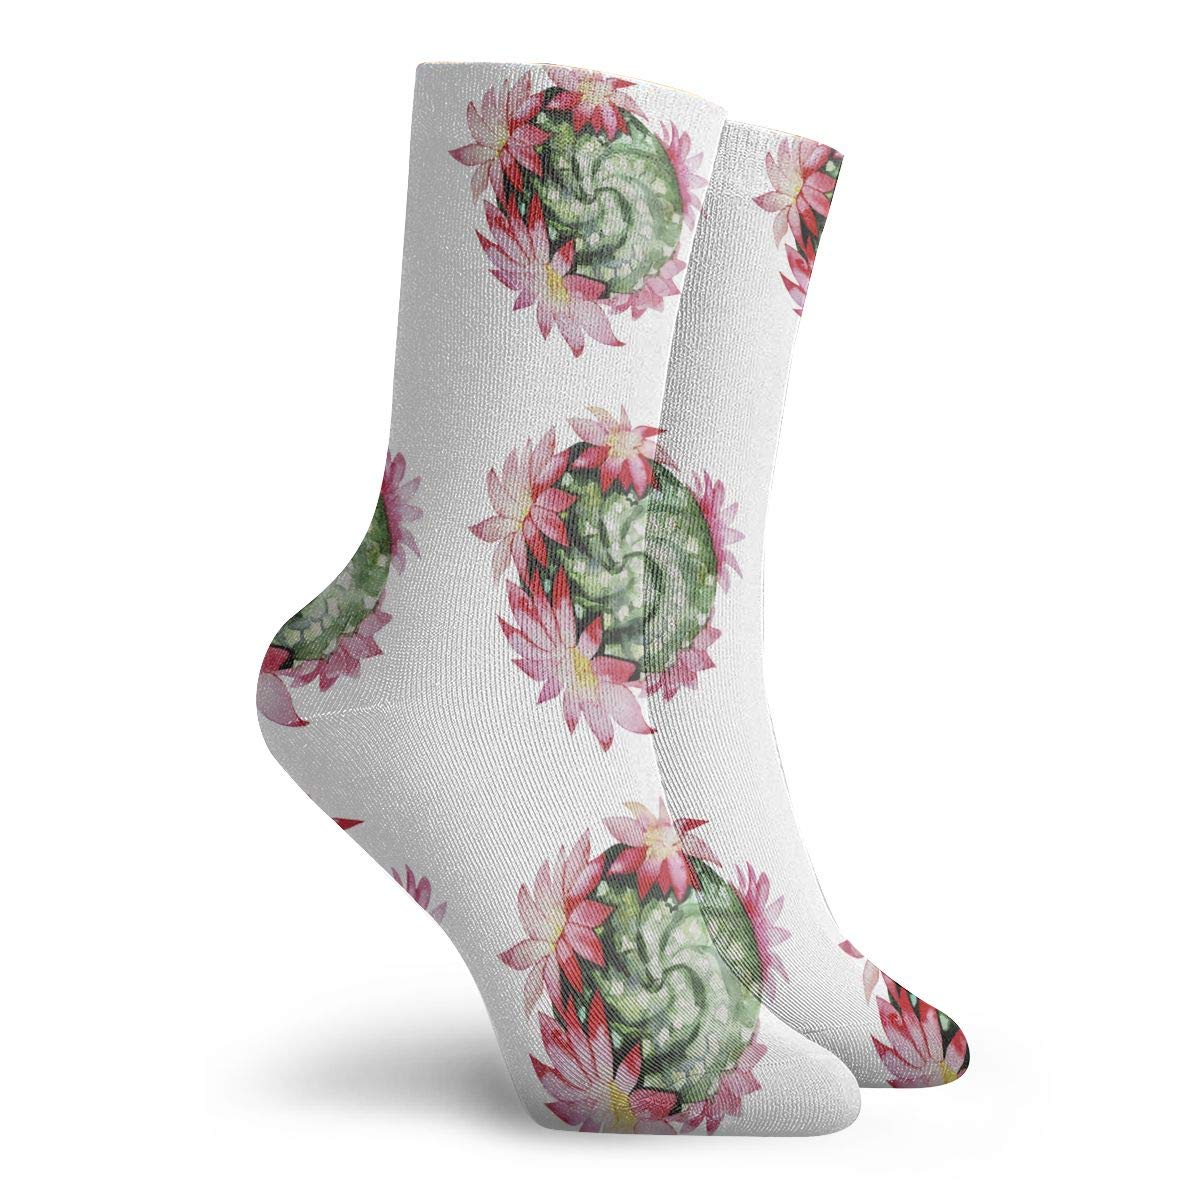 Unisex Watercolor Flowering Cactus Athletic Quarter Ankle Print Breathable Hiking Running Socks